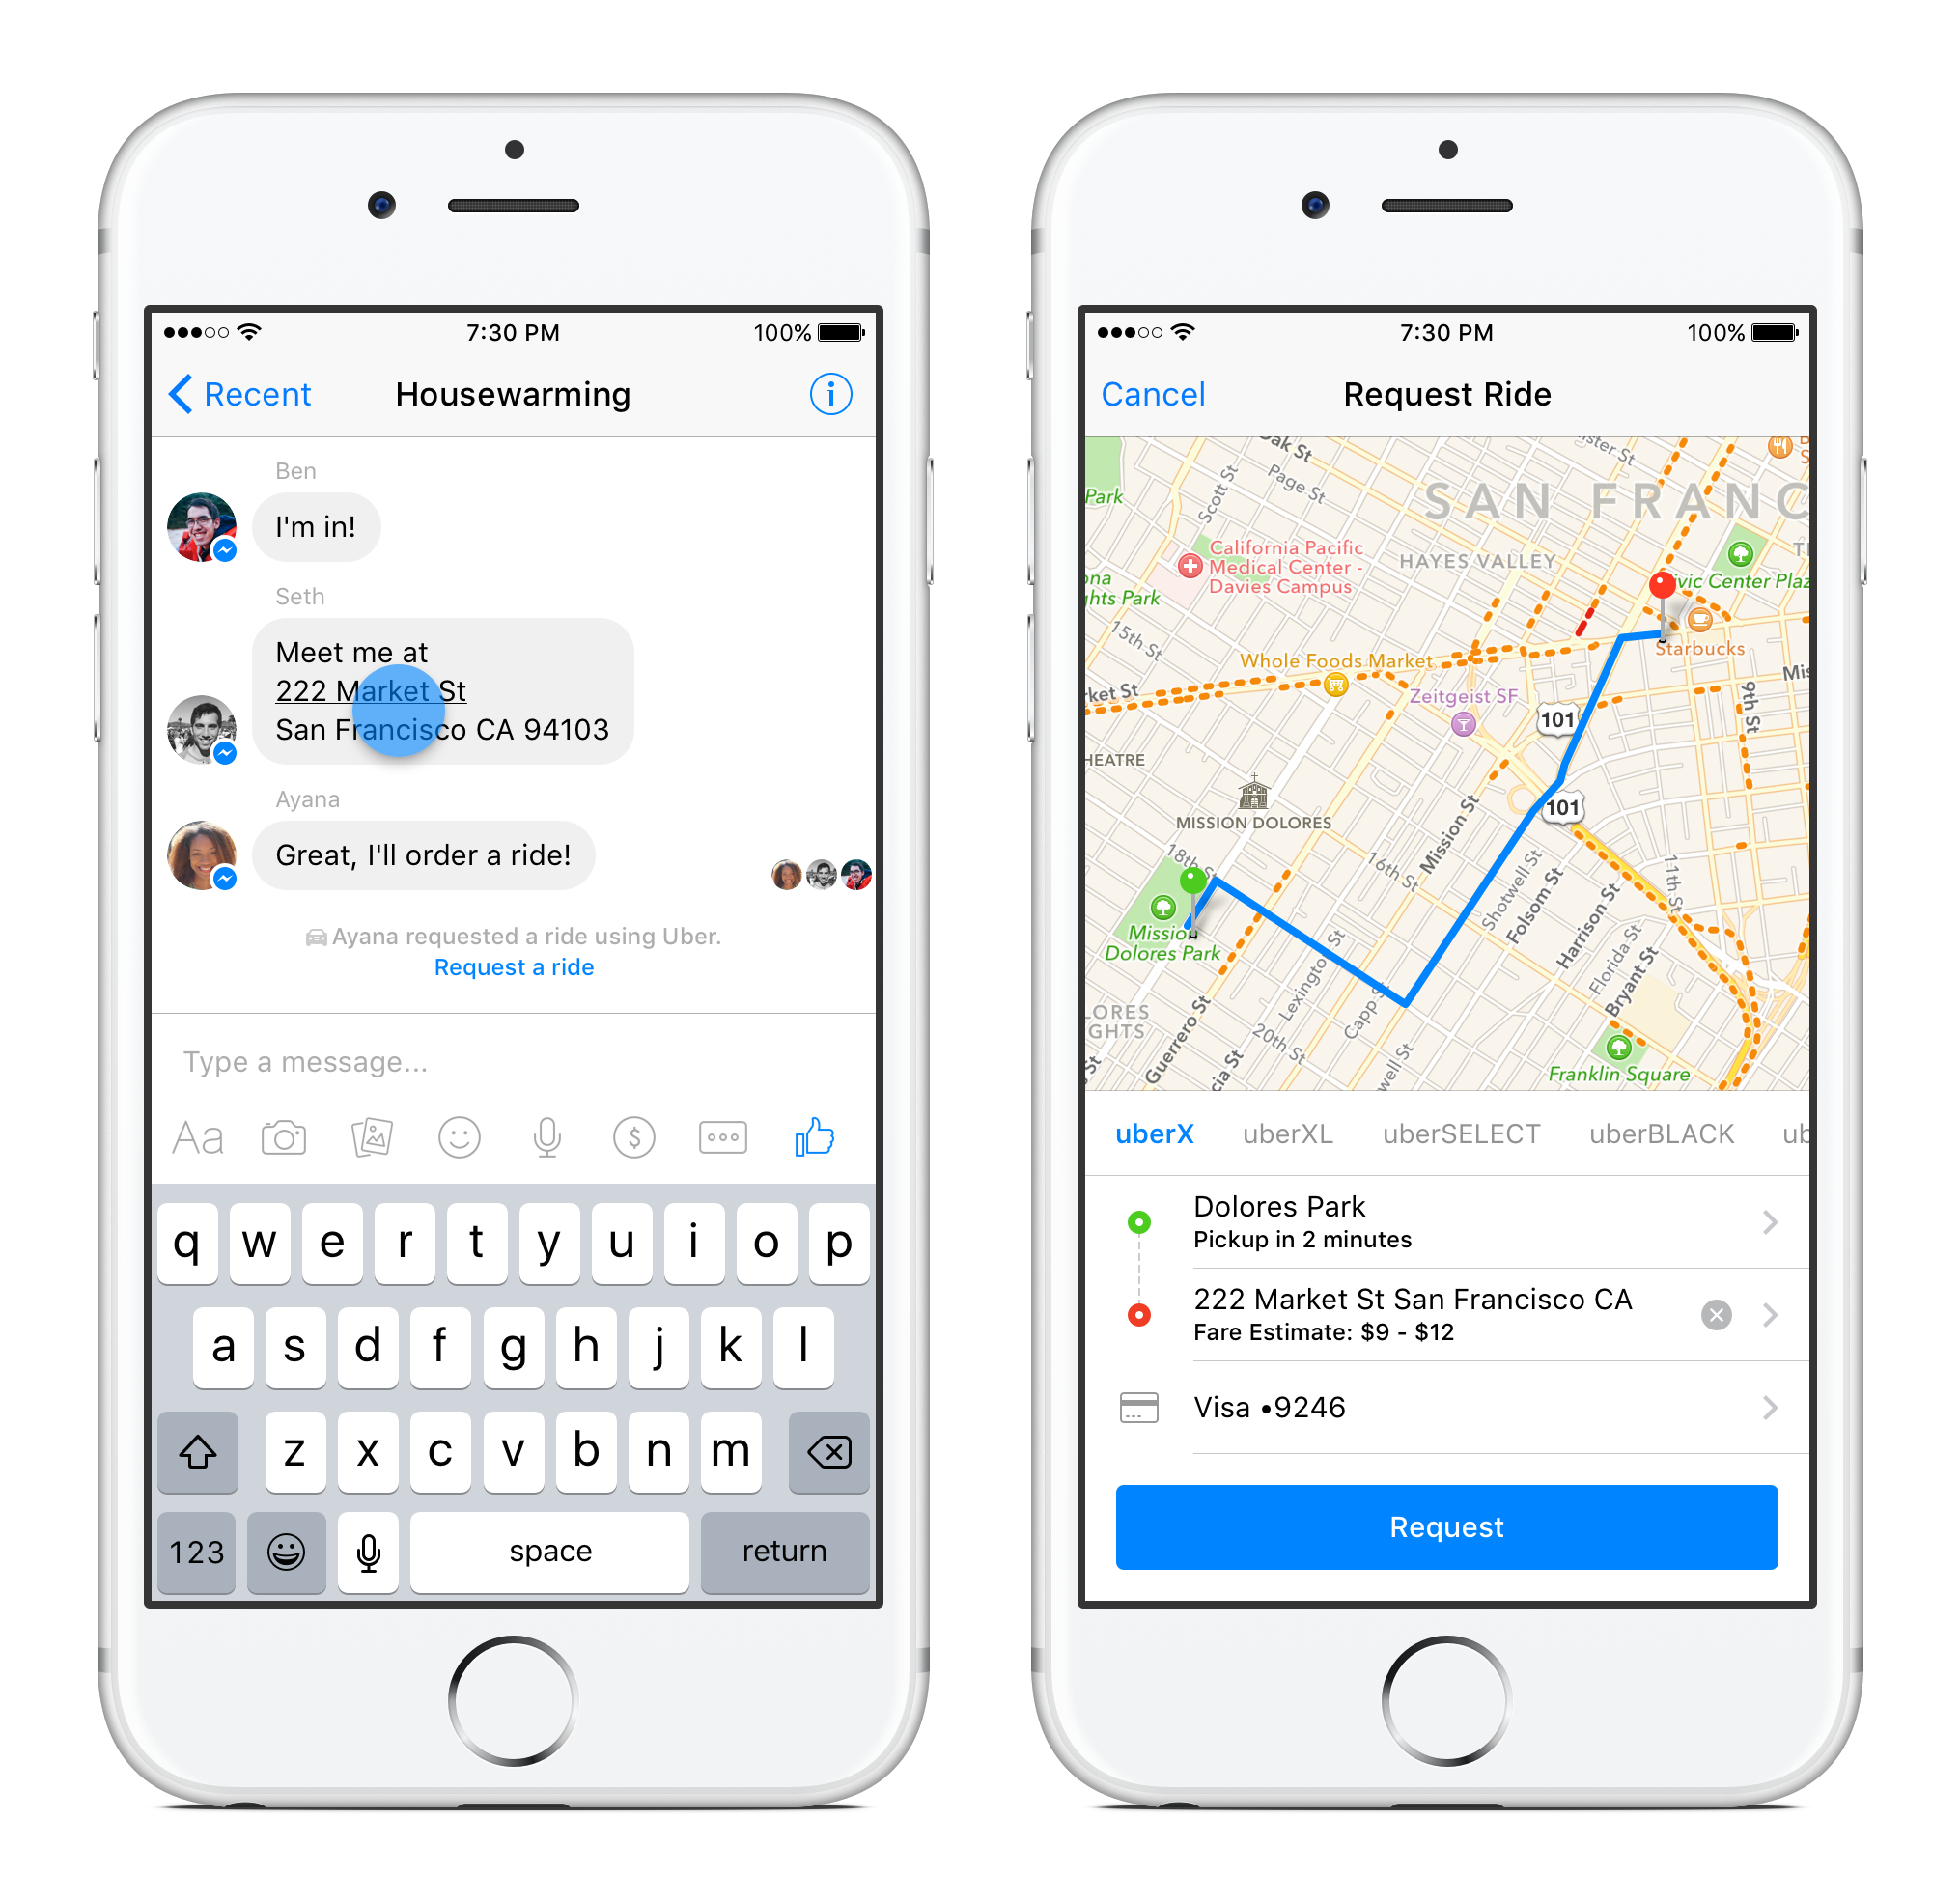 Facebook users can now summon an Uber using an address shared in Messenger.